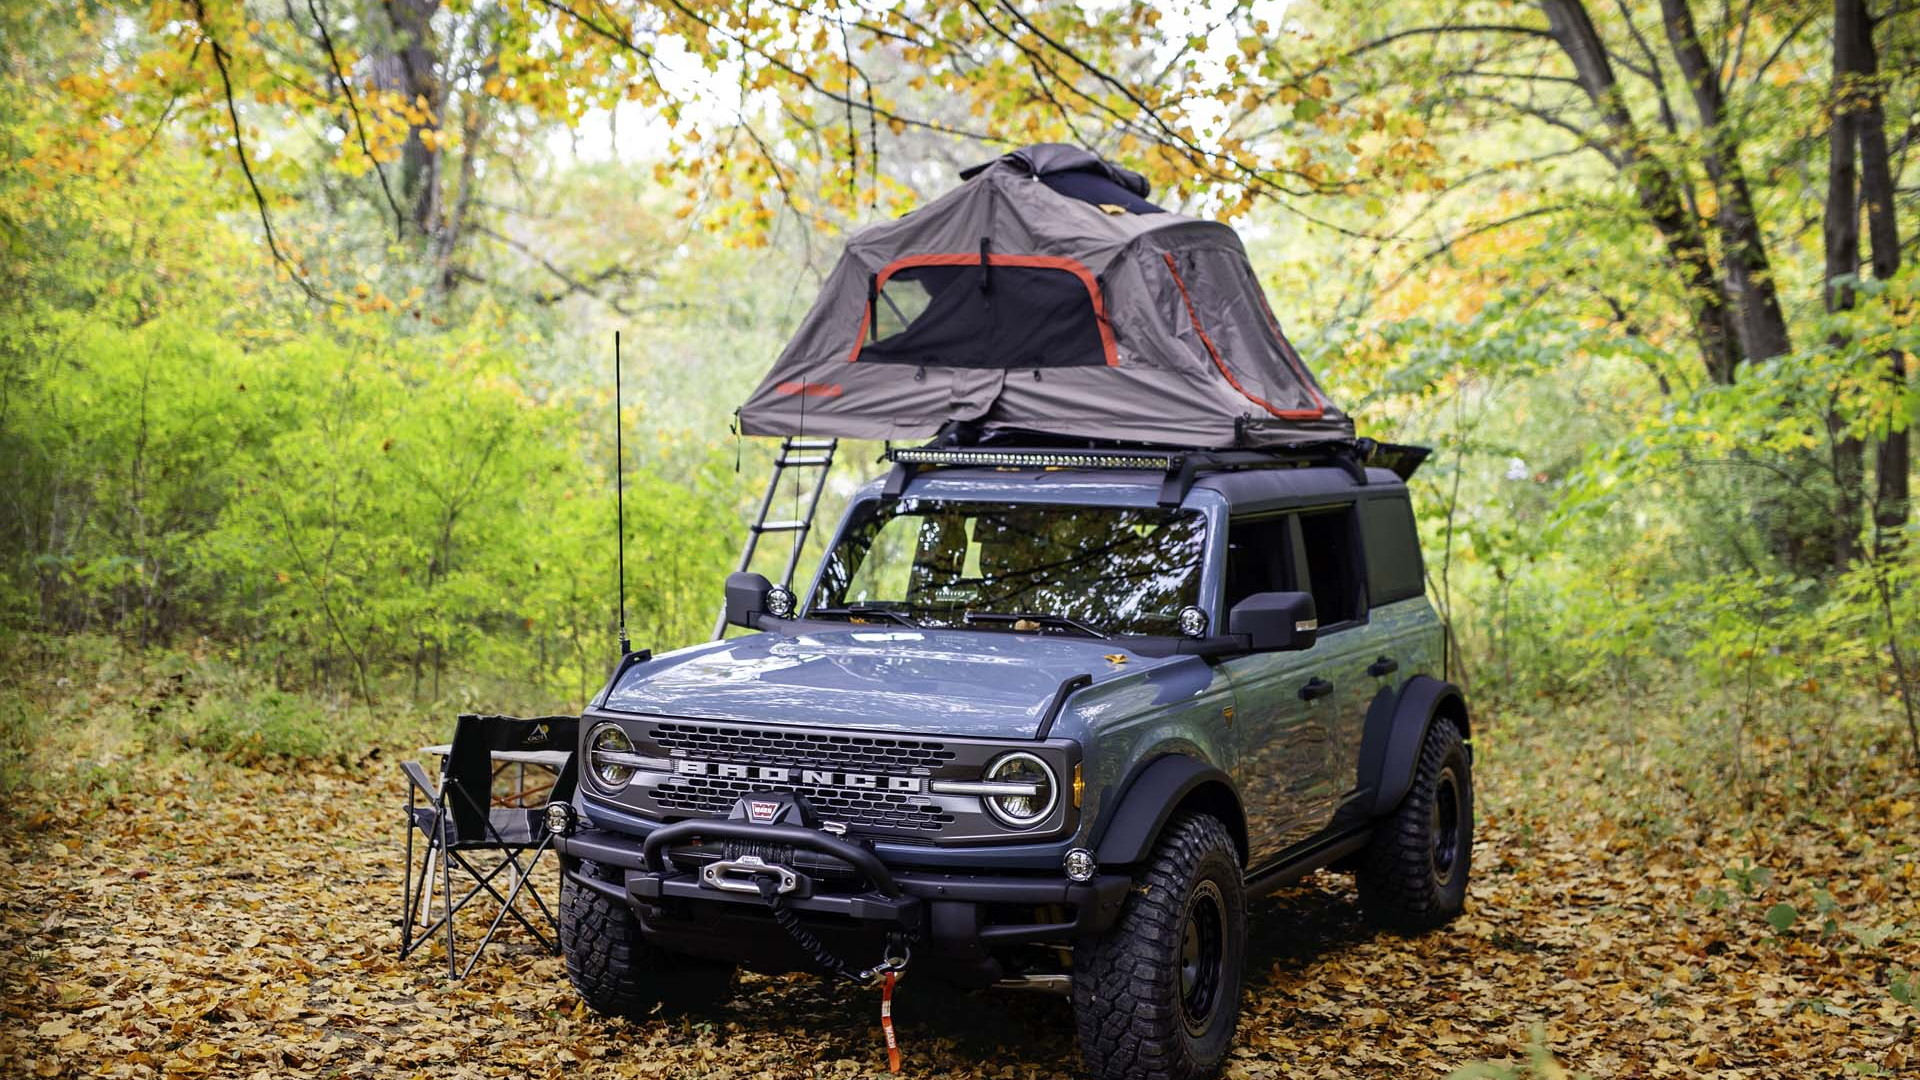 2021 Ford Bronco Overland concept